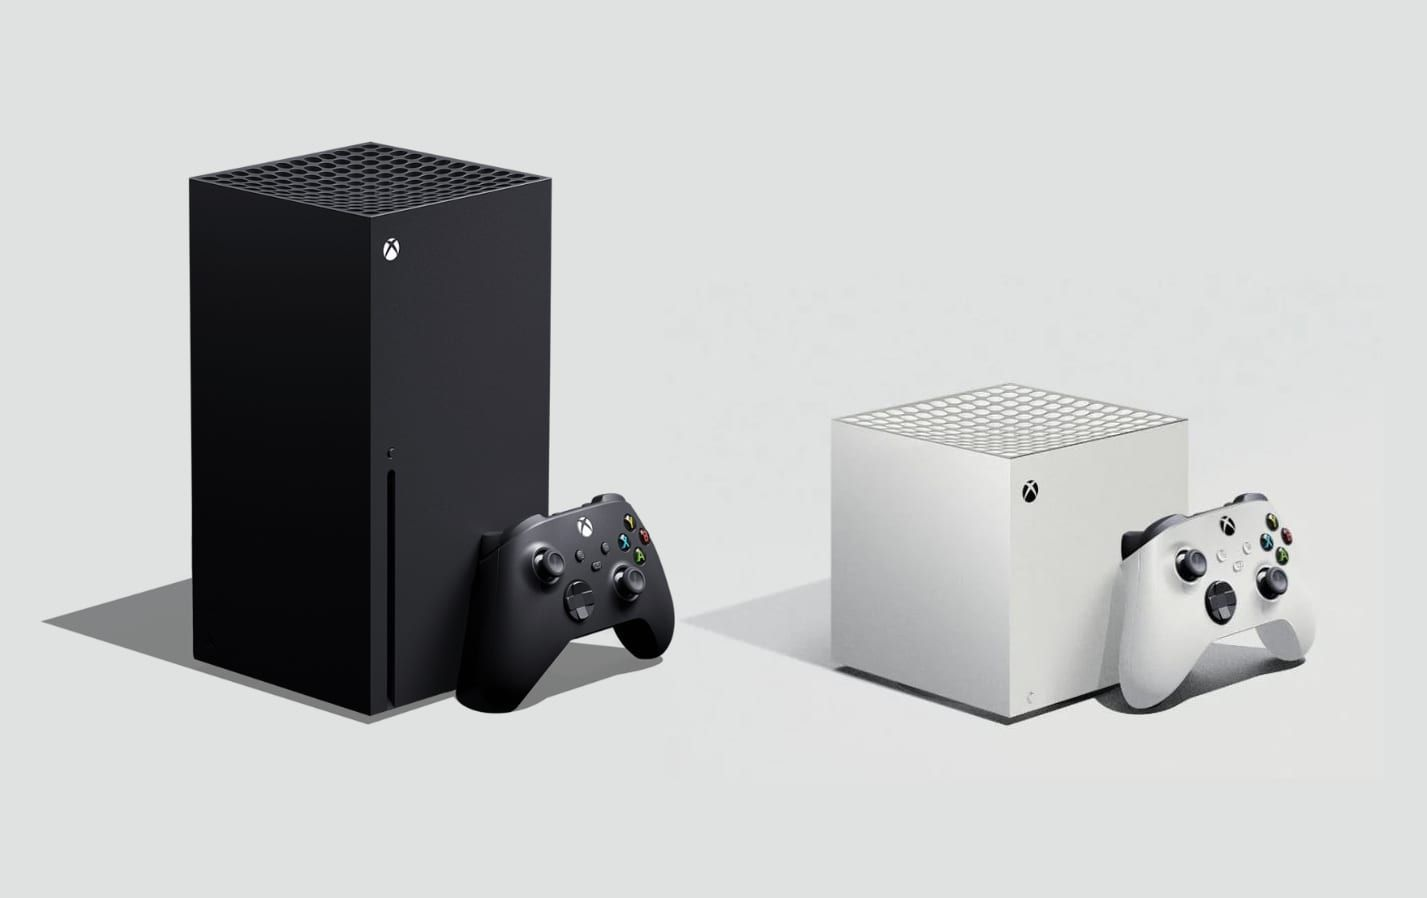 You can pre-order the Xbox Series X and S now - here's how much they cost